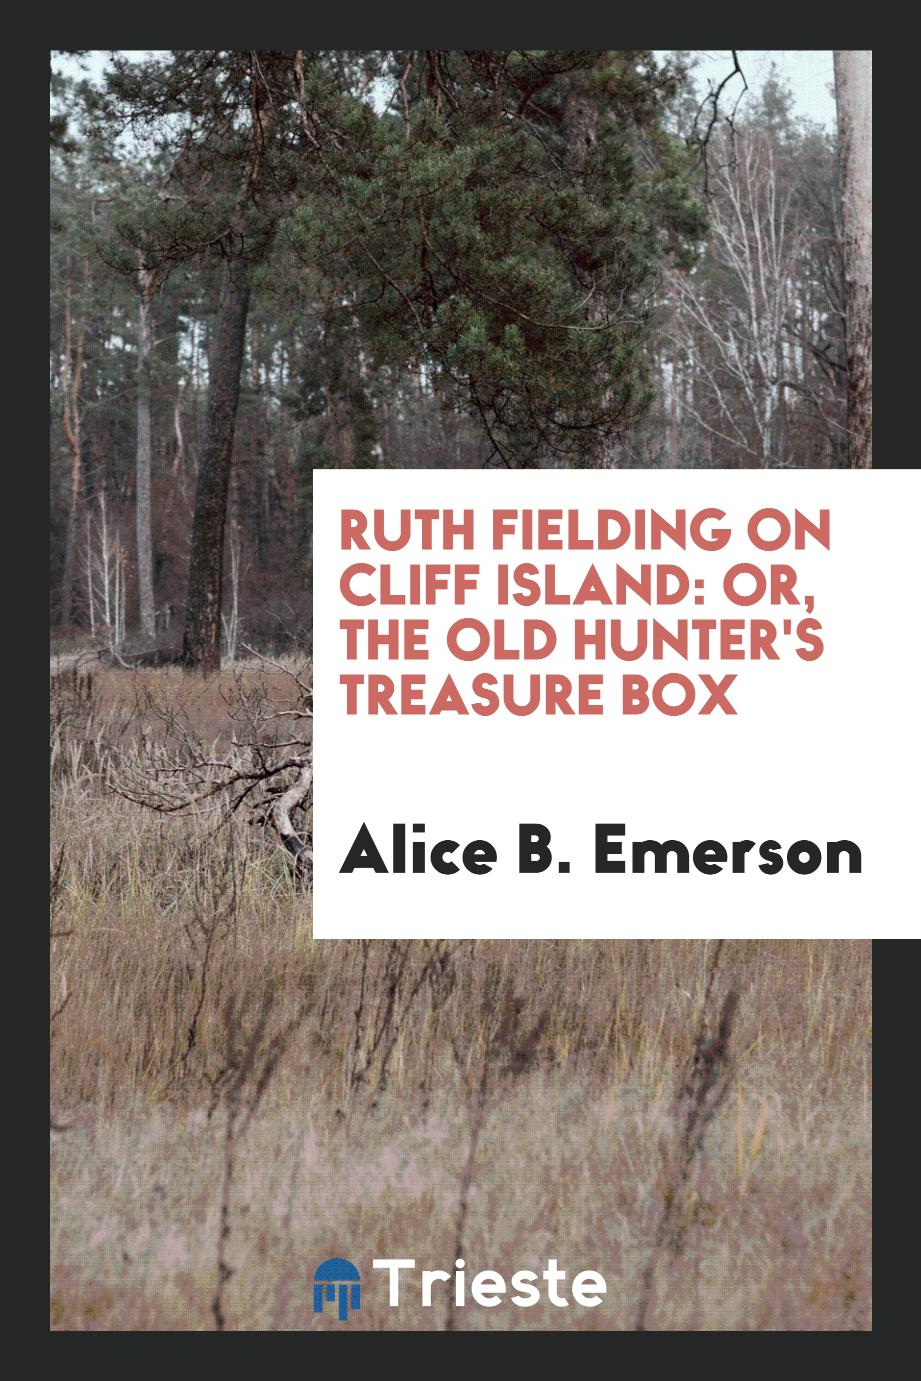 Ruth Fielding on Cliff Island: Or, the Old Hunter's Treasure Box